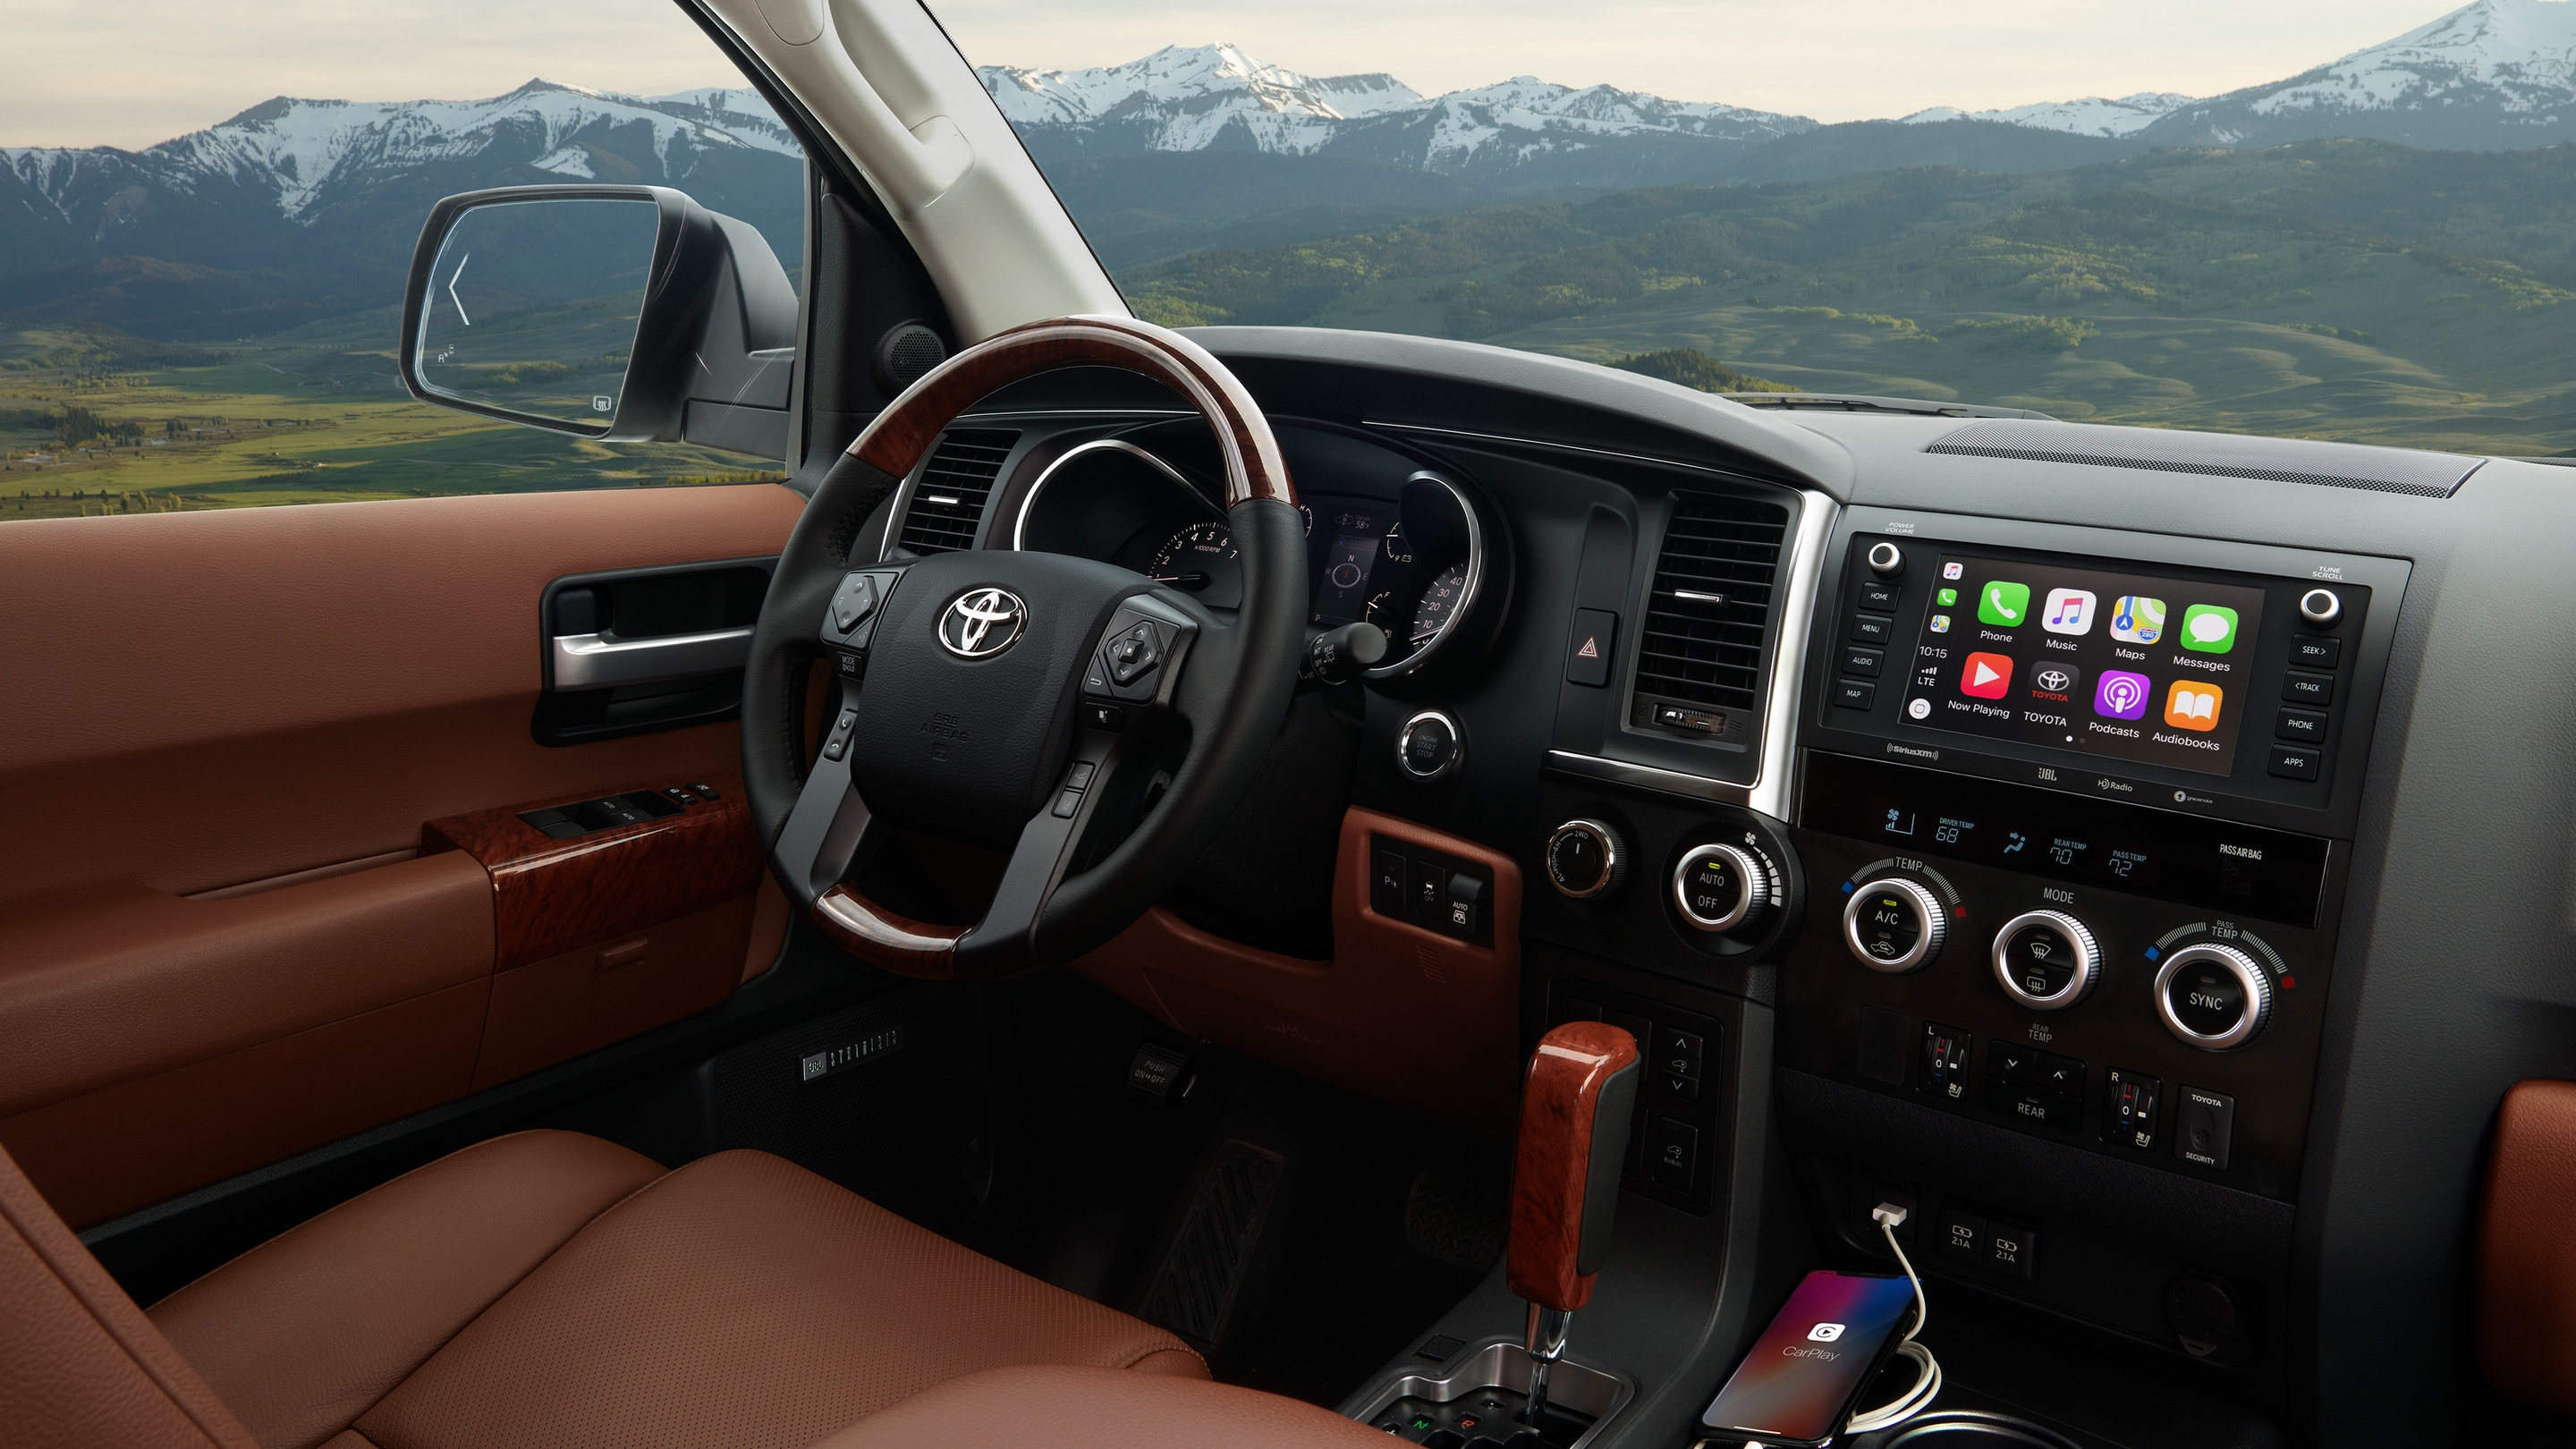 2020 Toyota Sequoia Dashboard